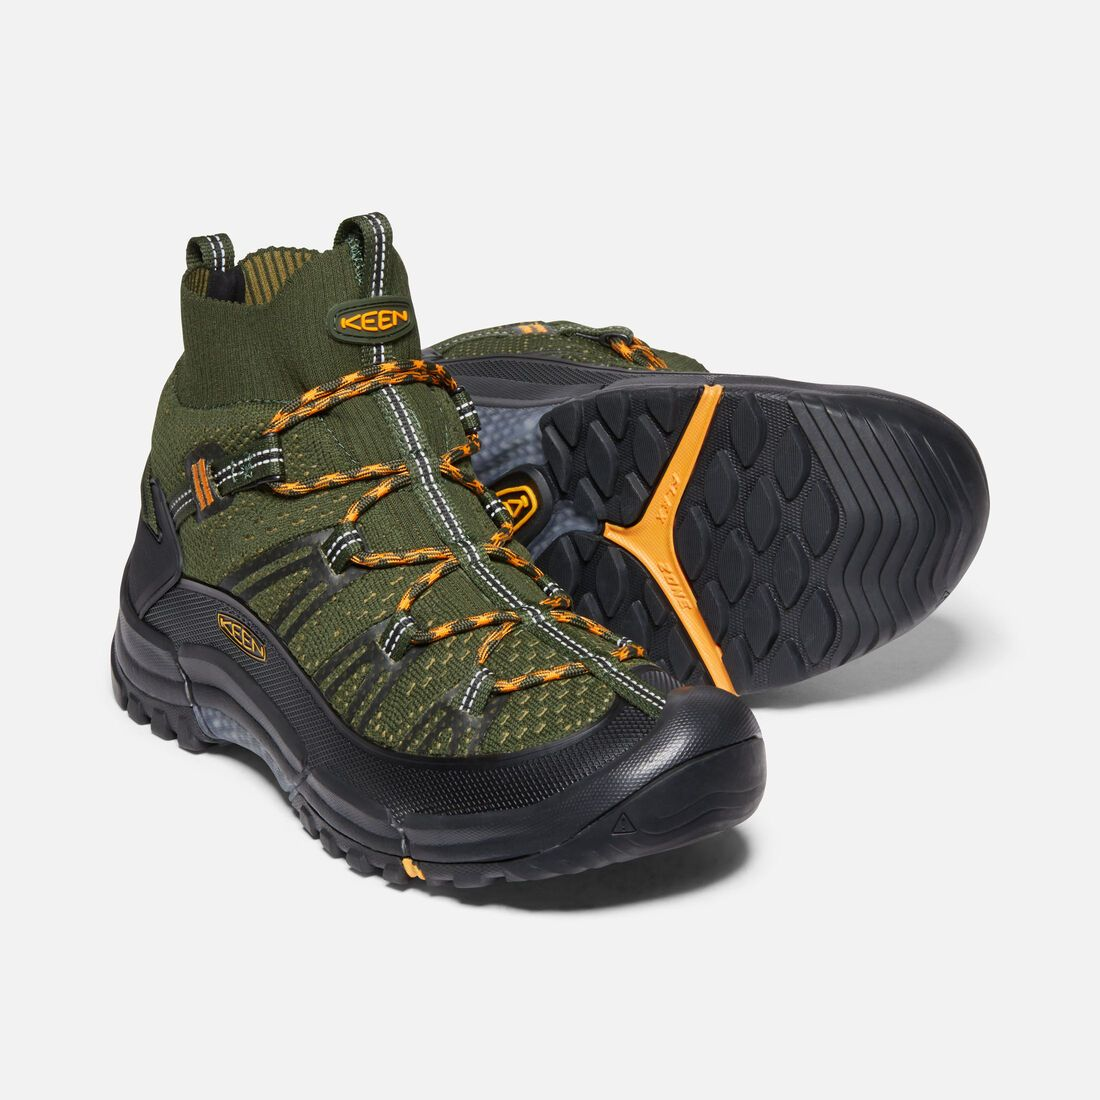 Men's AXIS EVO Mid - Knit Sneaker Boots